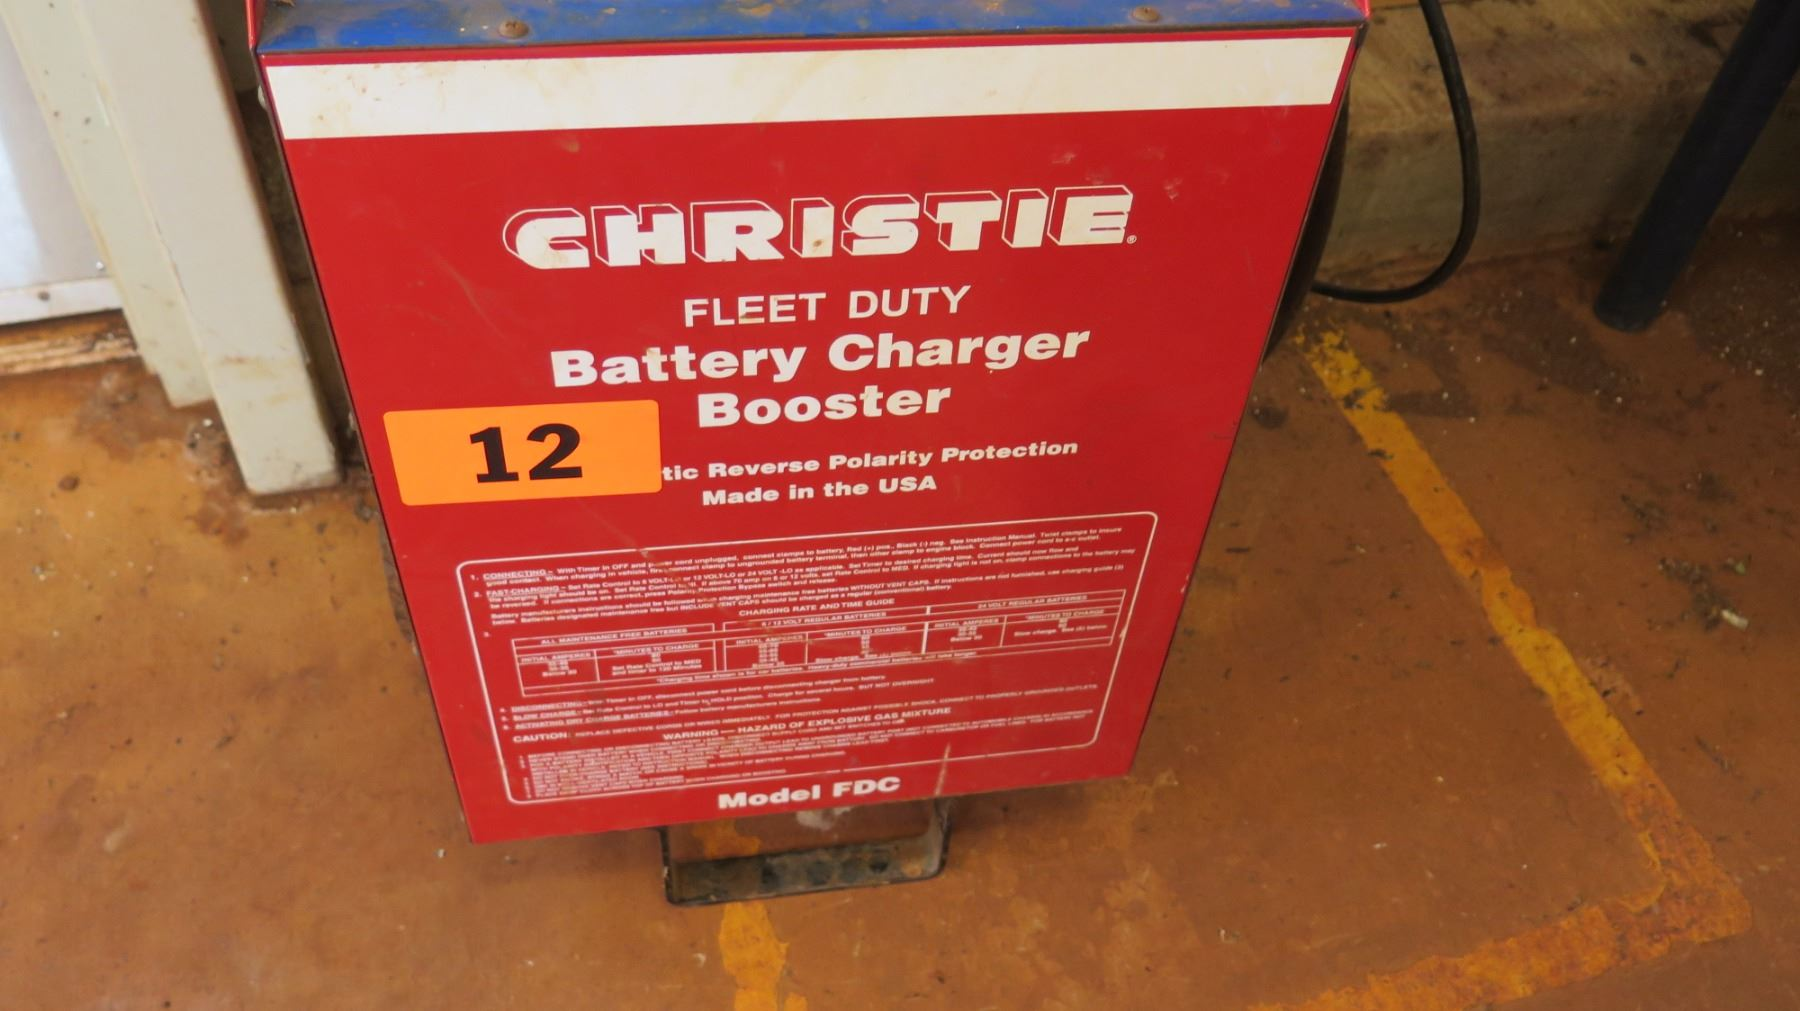 Christie Fleet Duty Fdc Battery Charger Booster Oahu Auctions Reverse Polarity Protection Image 3